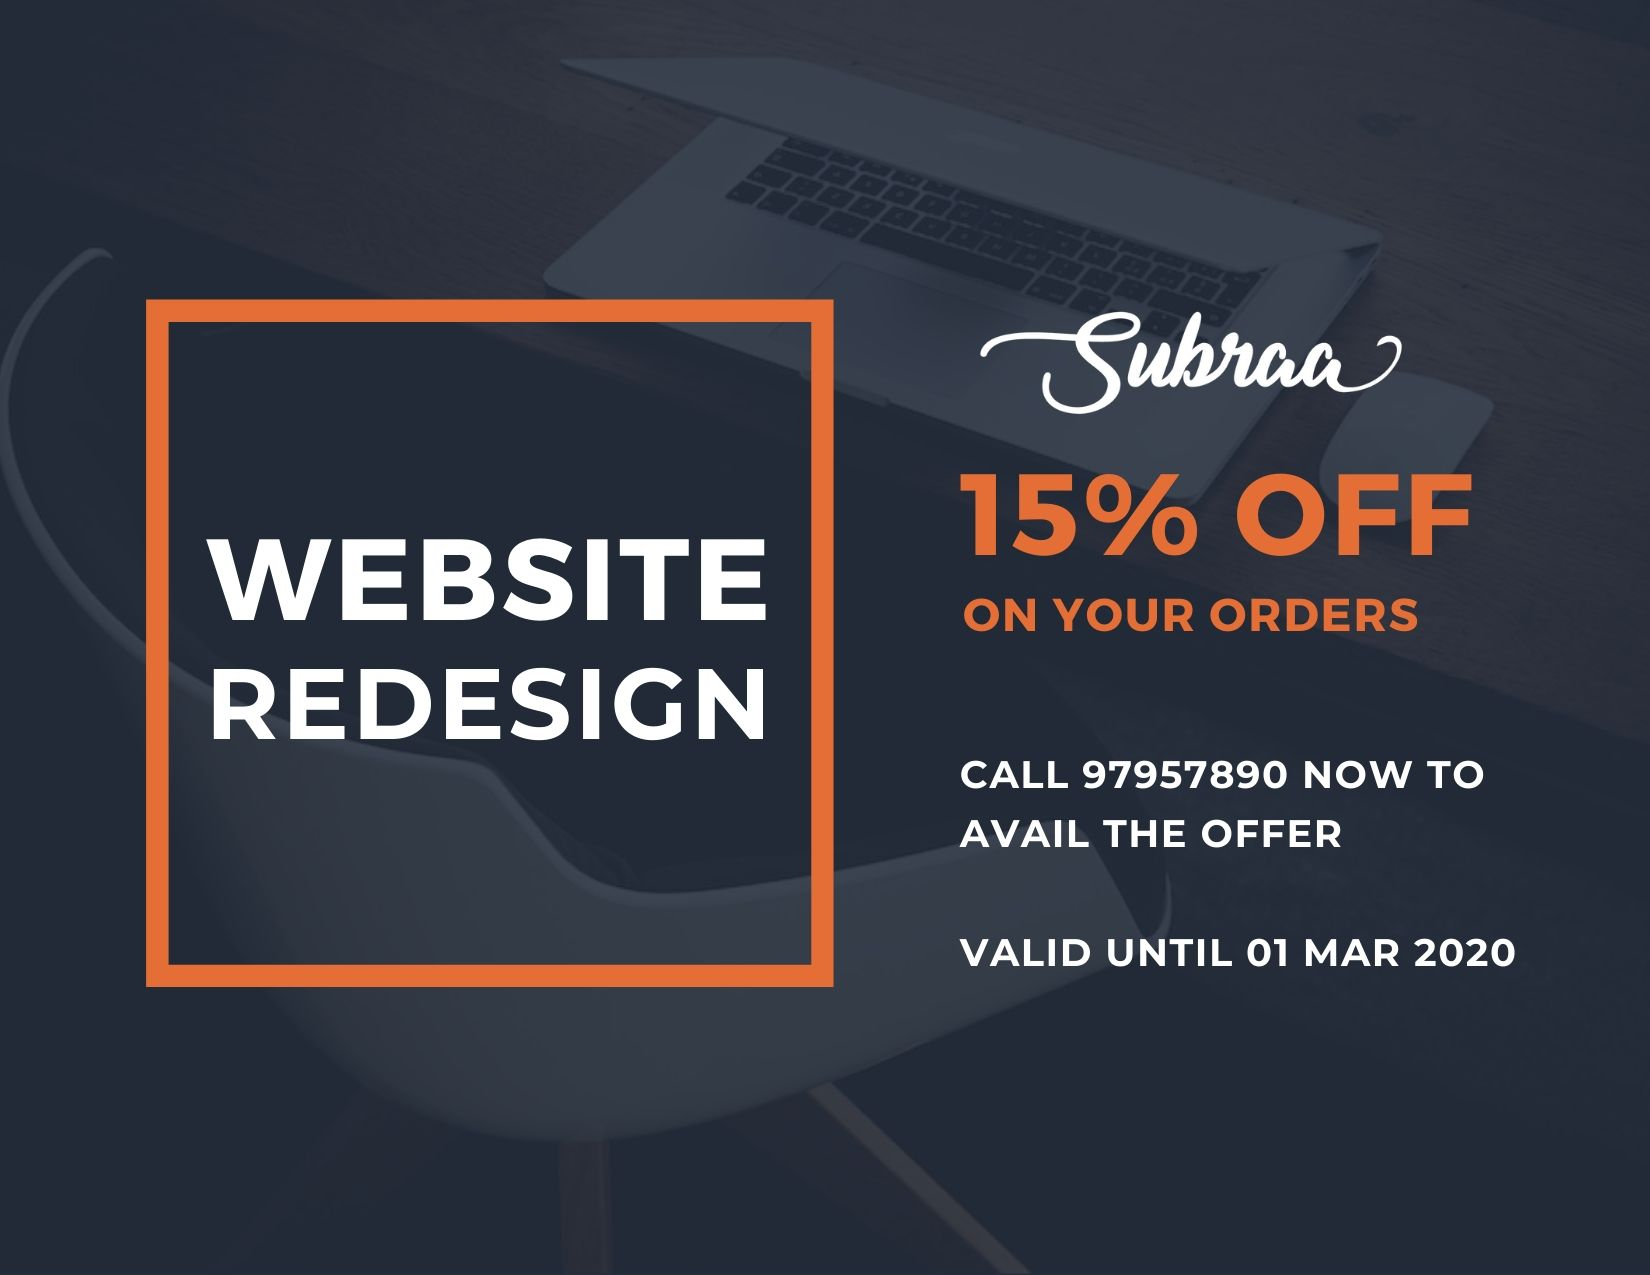 Website Redesign Offers and Promotions by Subraa, Freelance Web Designer Singapore